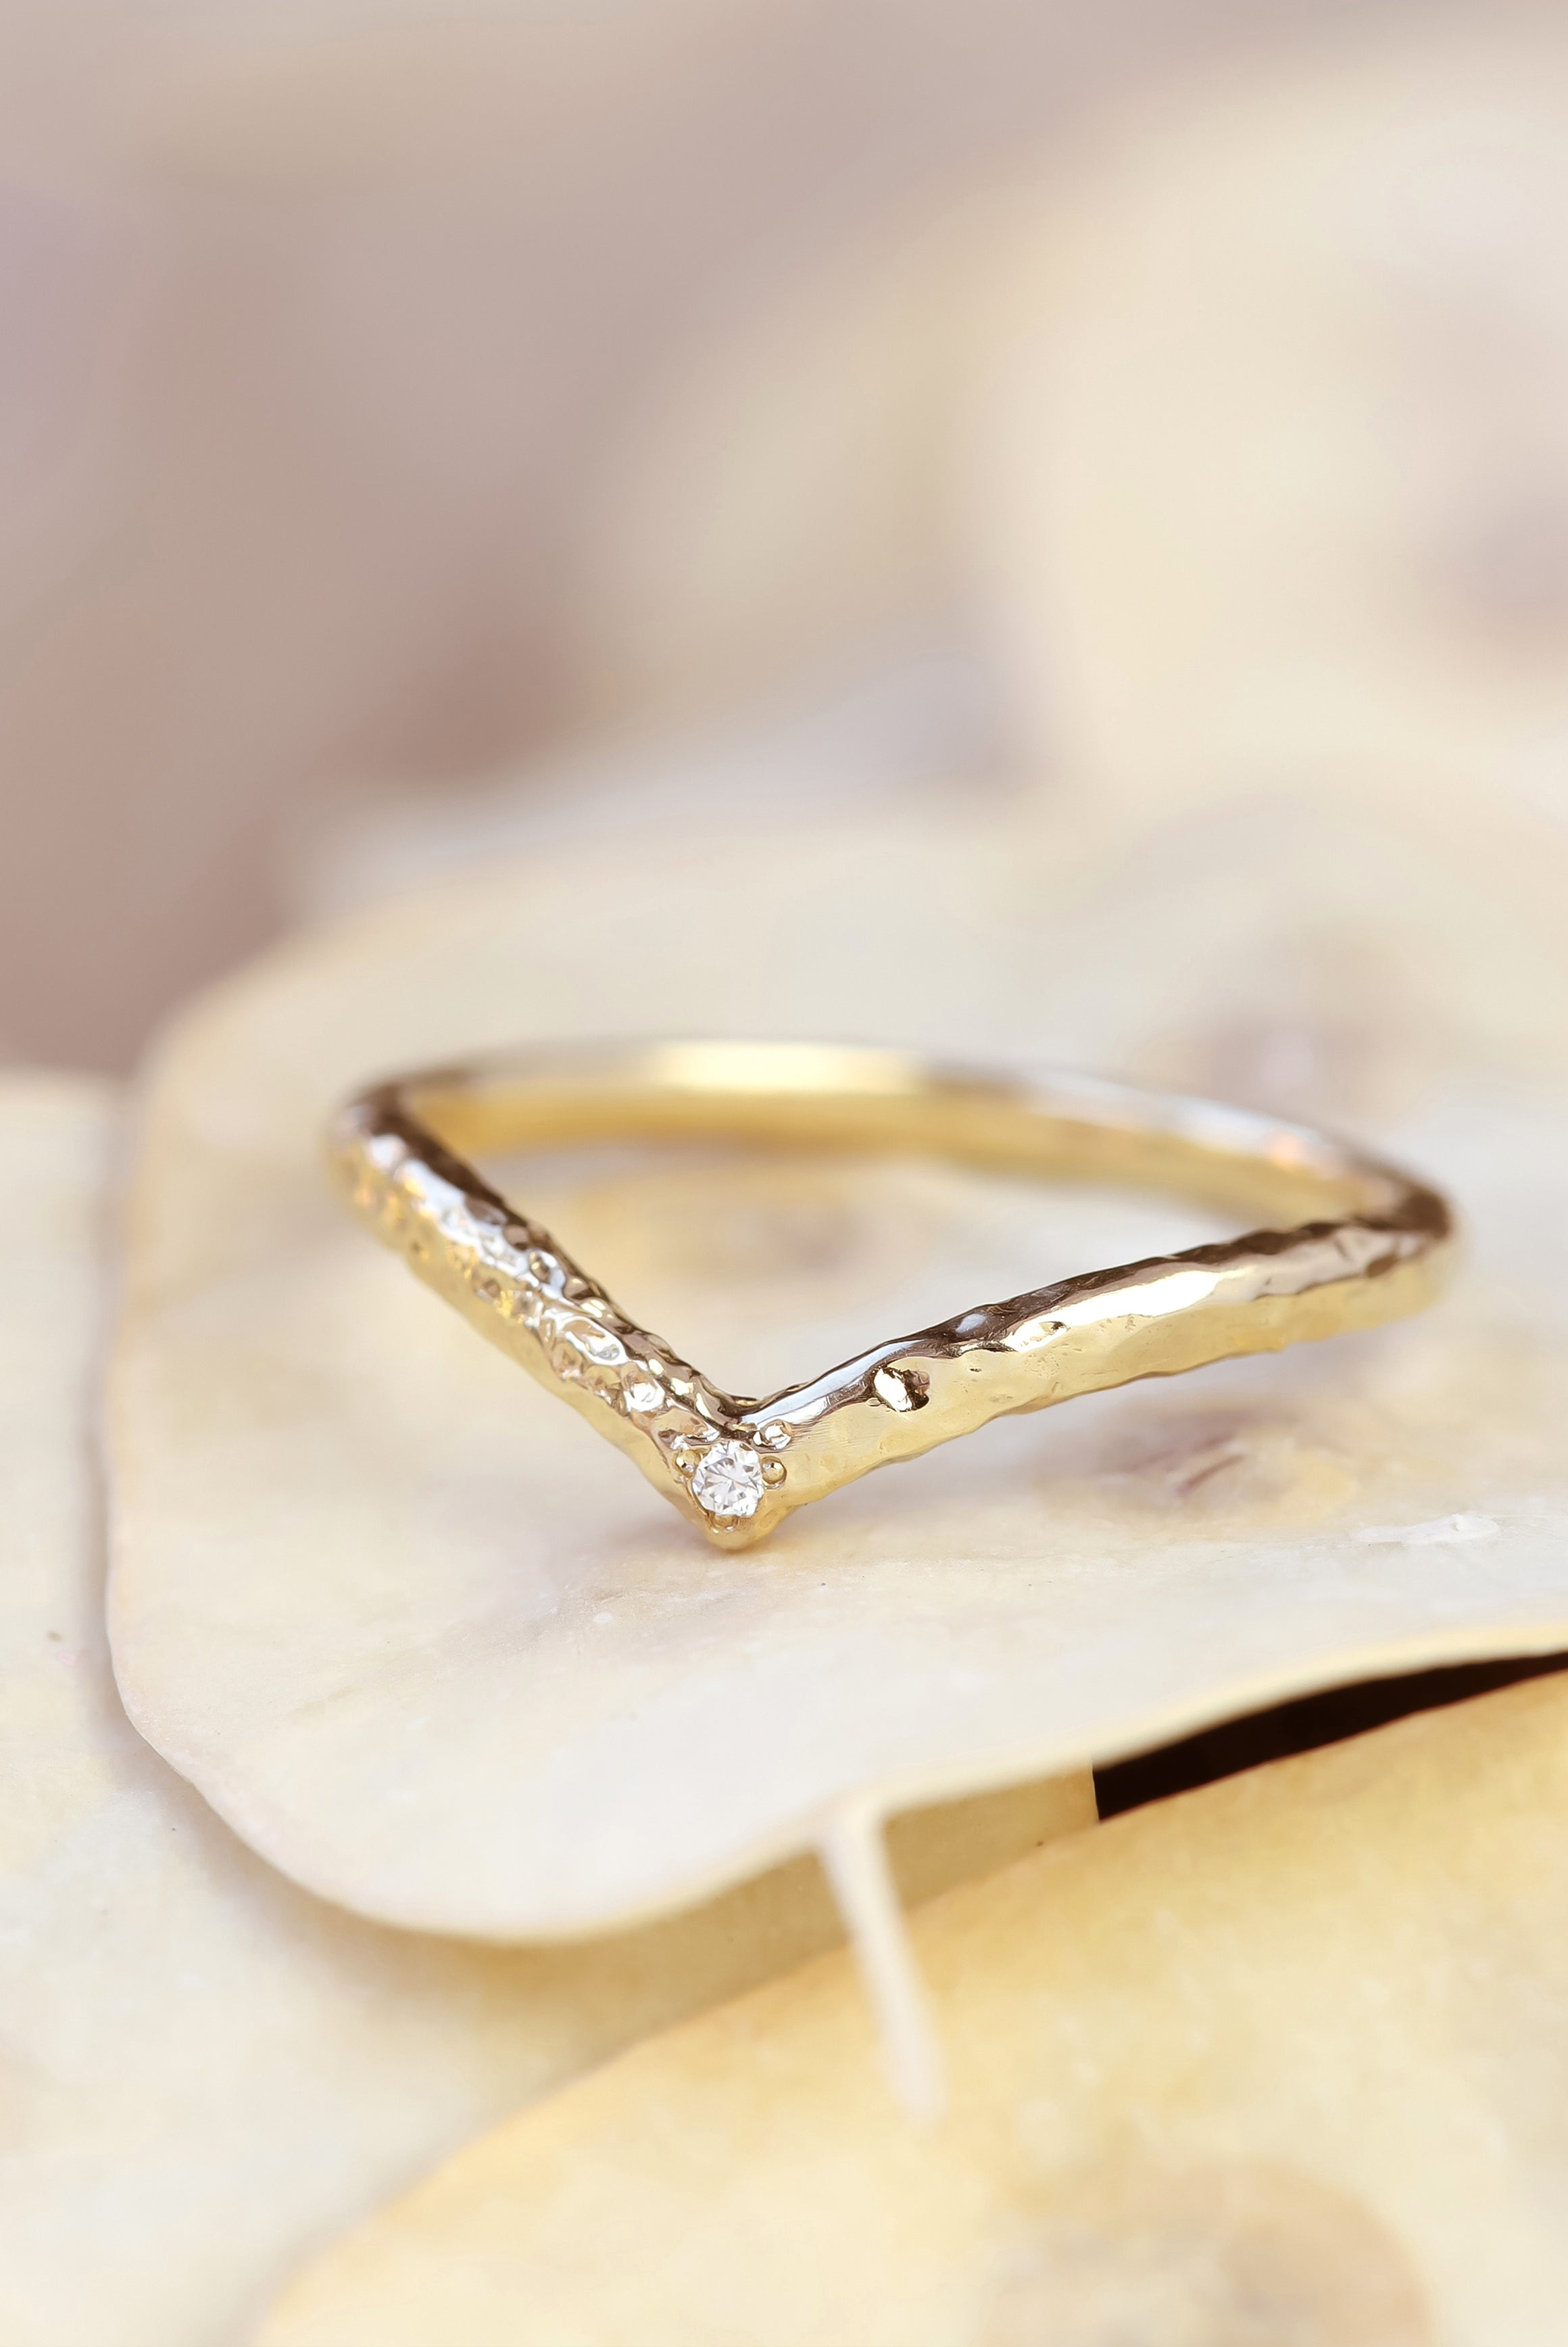 combat-dull-style-with-unique-diamond-stacking-rings-textured-chevron-ring